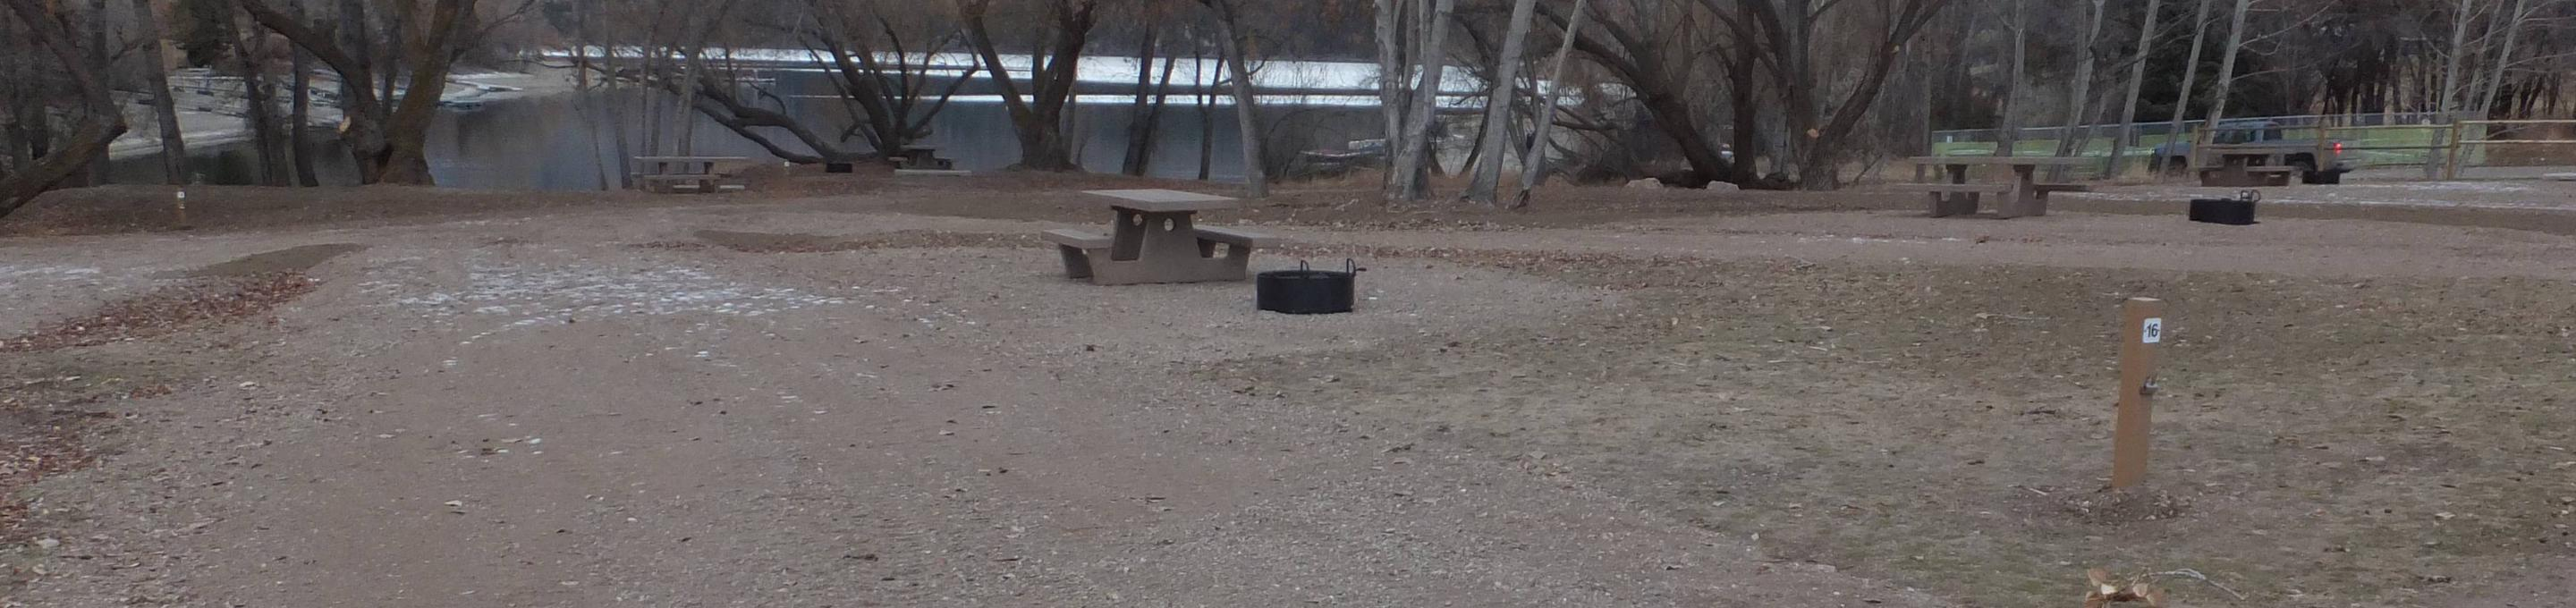 Jo Bonner Campground - Site 16